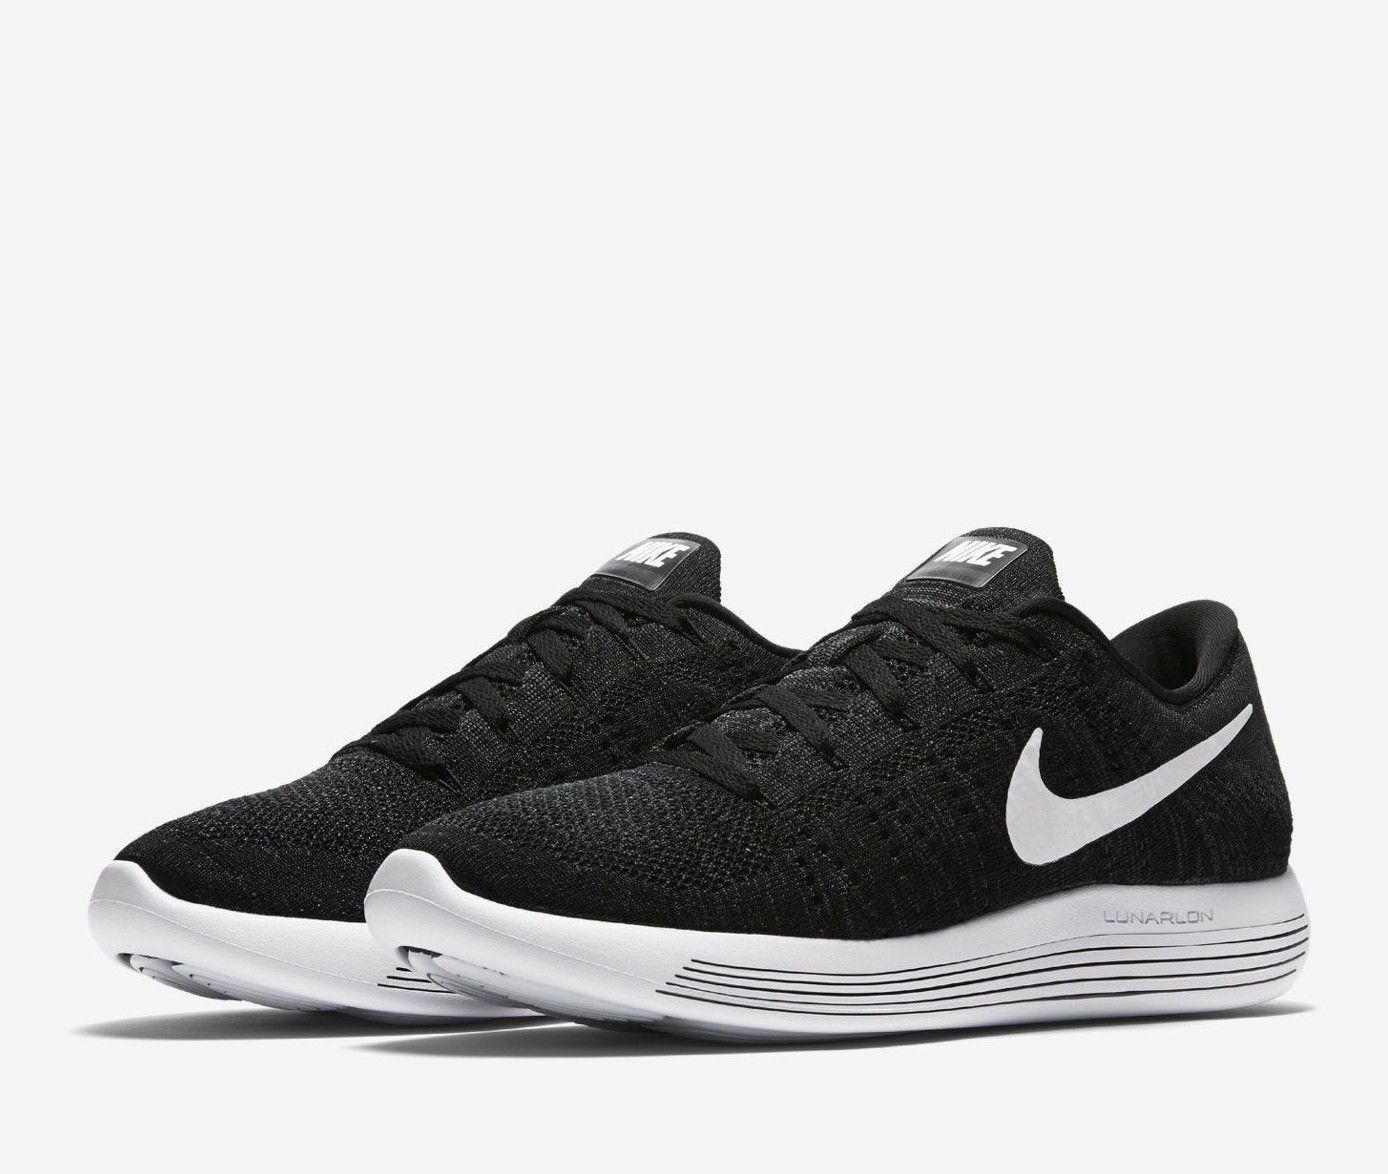 nike lunarepic faible flyknit chaussure chaussure chaussure d'homme [taille 14] noir / blanc 843764-002 6fcd21